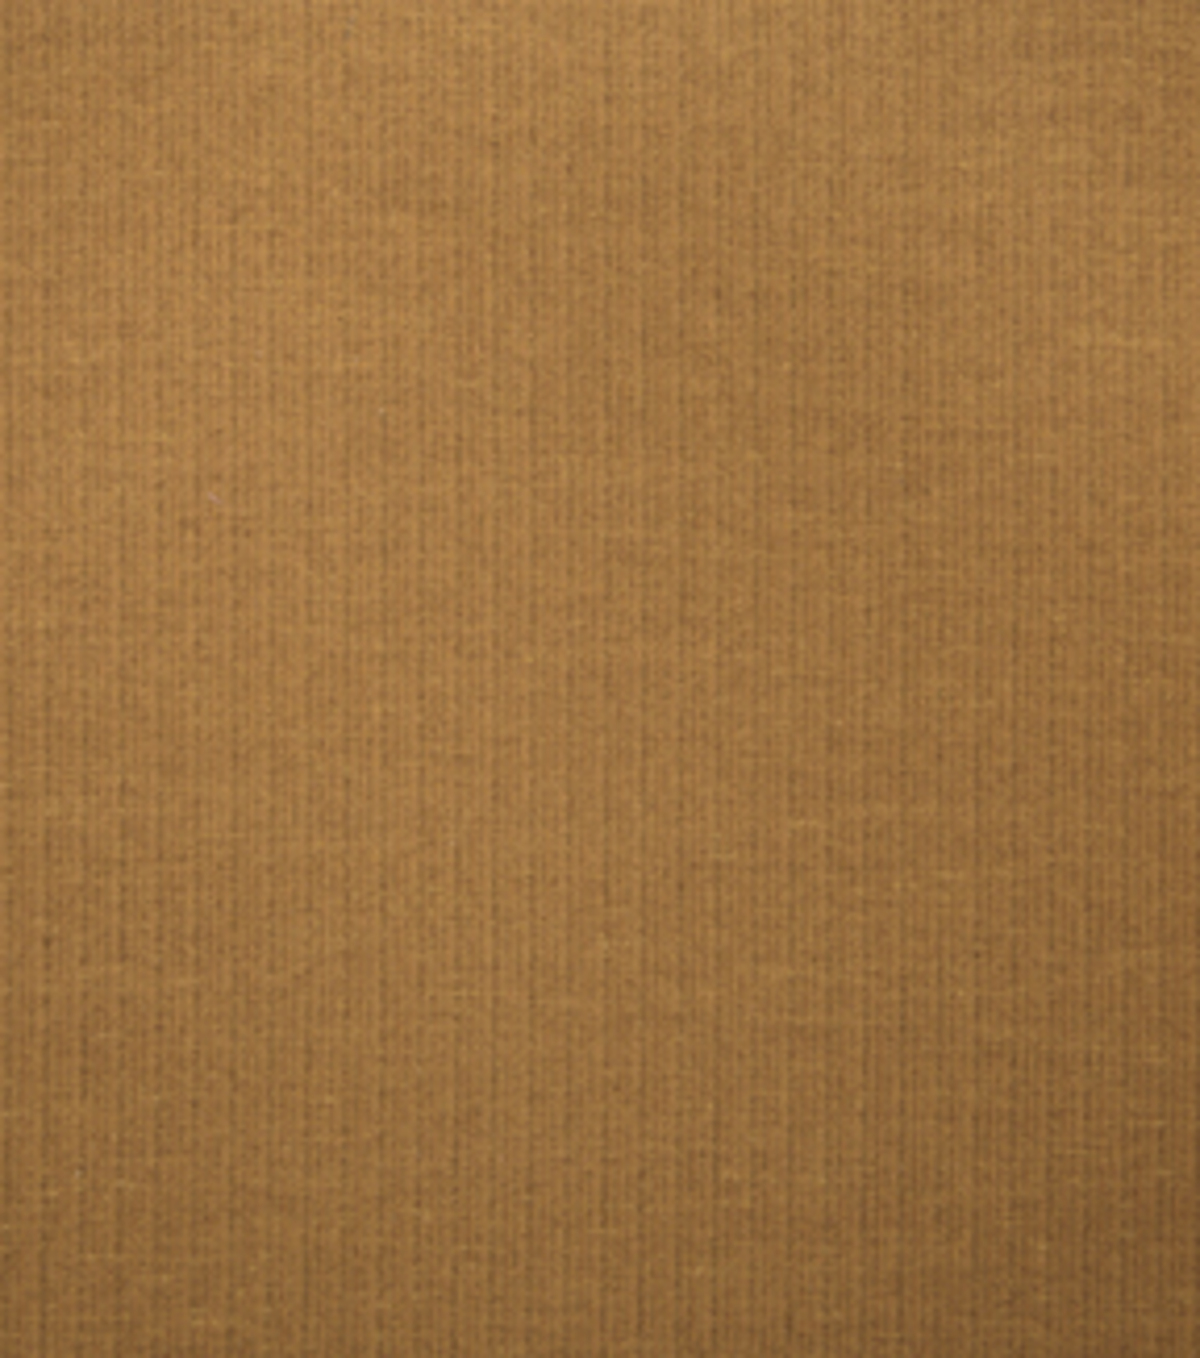 Home Decor 8\u0022x8\u0022 Fabric Swatch-Upholstery Fabric SMC Designs Wilson Turmeric